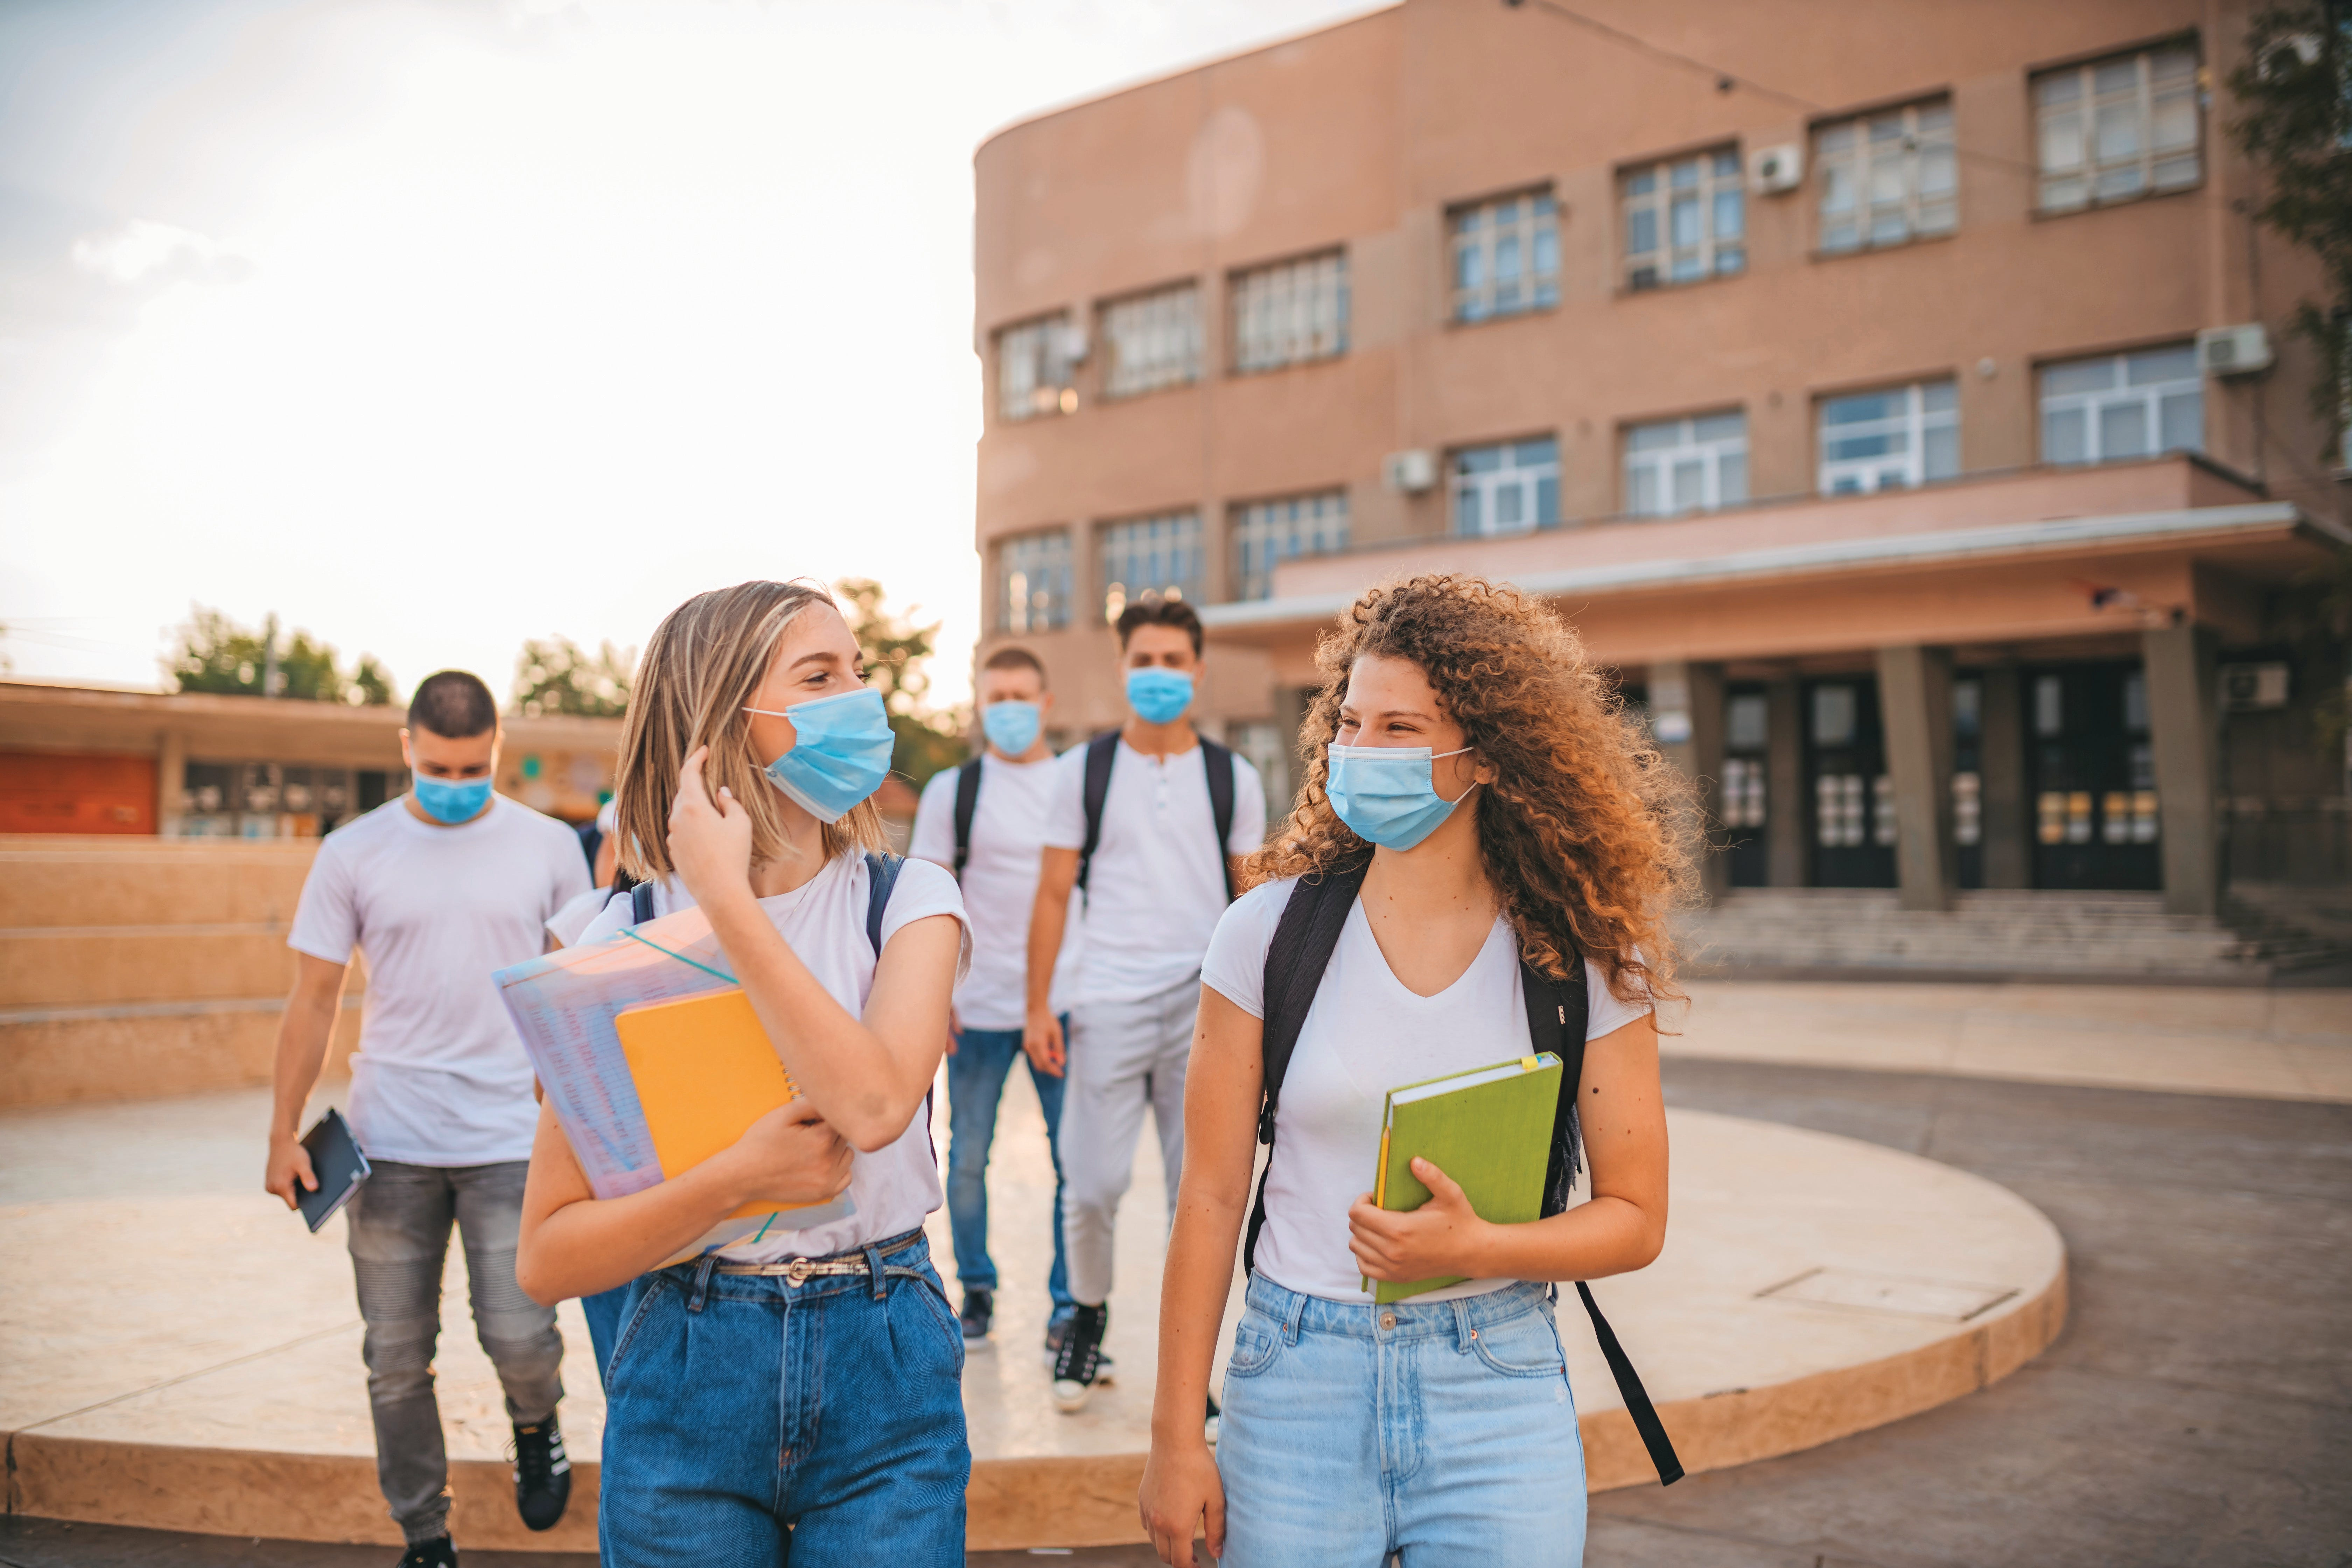 After a chaotic pandemic school year, help kids get back on track this fall